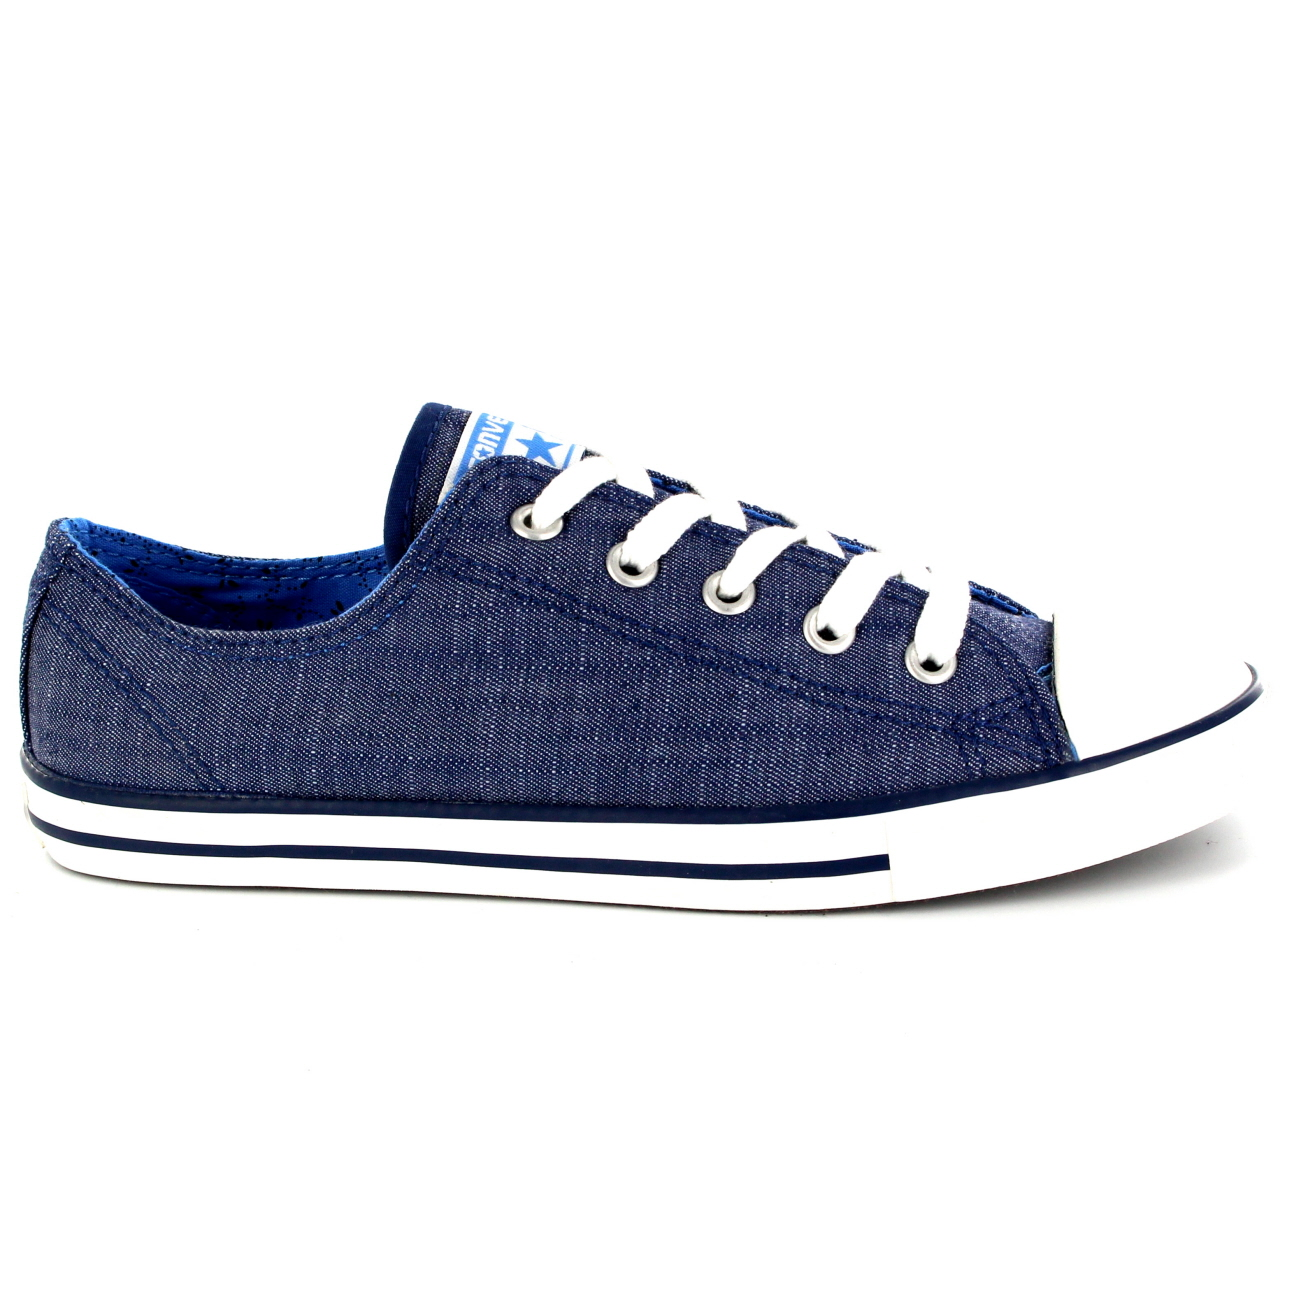 f08339d9c133 Womens Converse Dainty Denim Ox All Star Chuck Taylor Lace Up ...